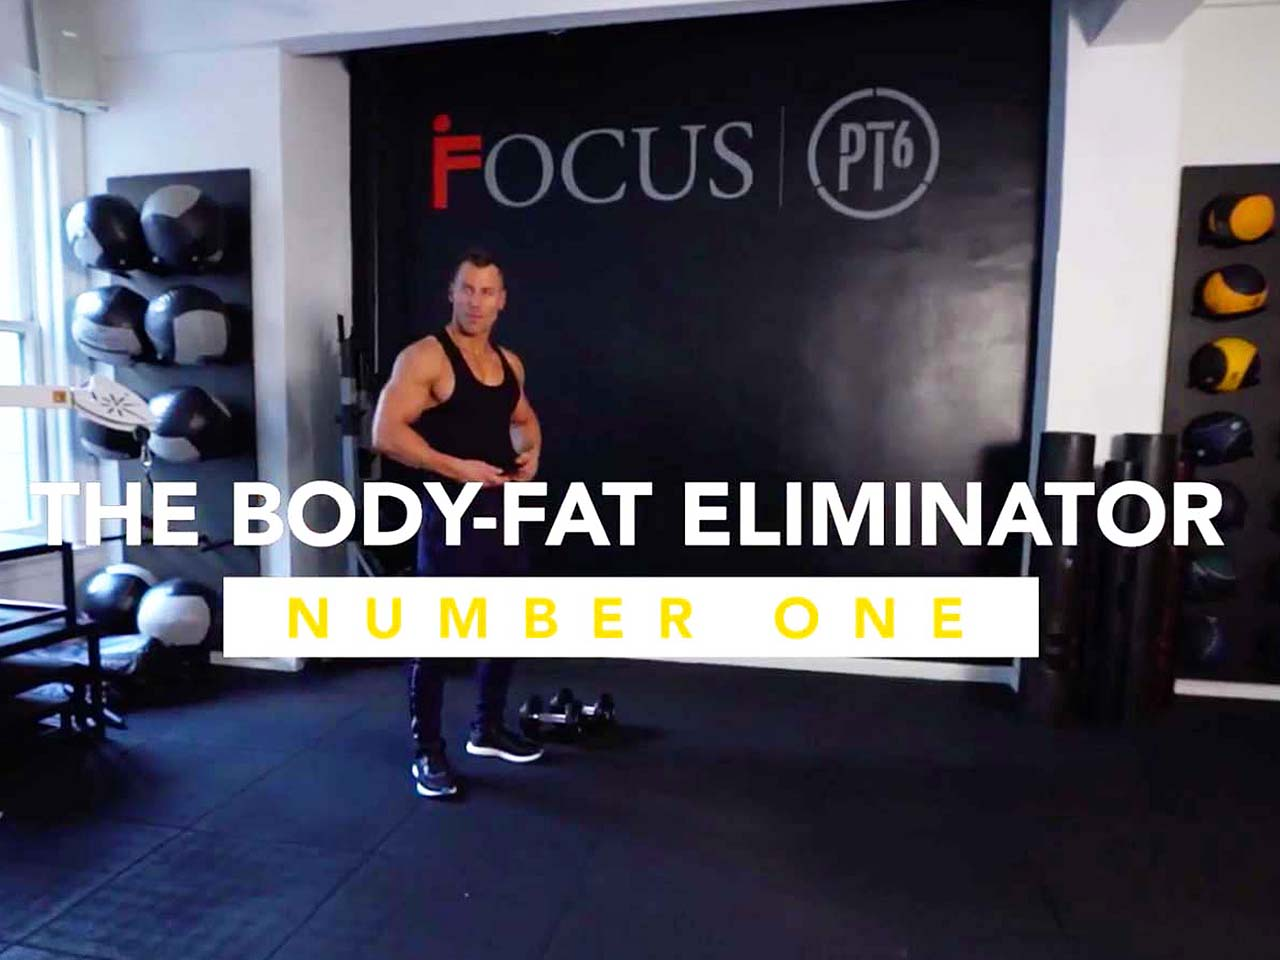 The Body-Fat Eliminator Workout #1: The routine to torch your love handles